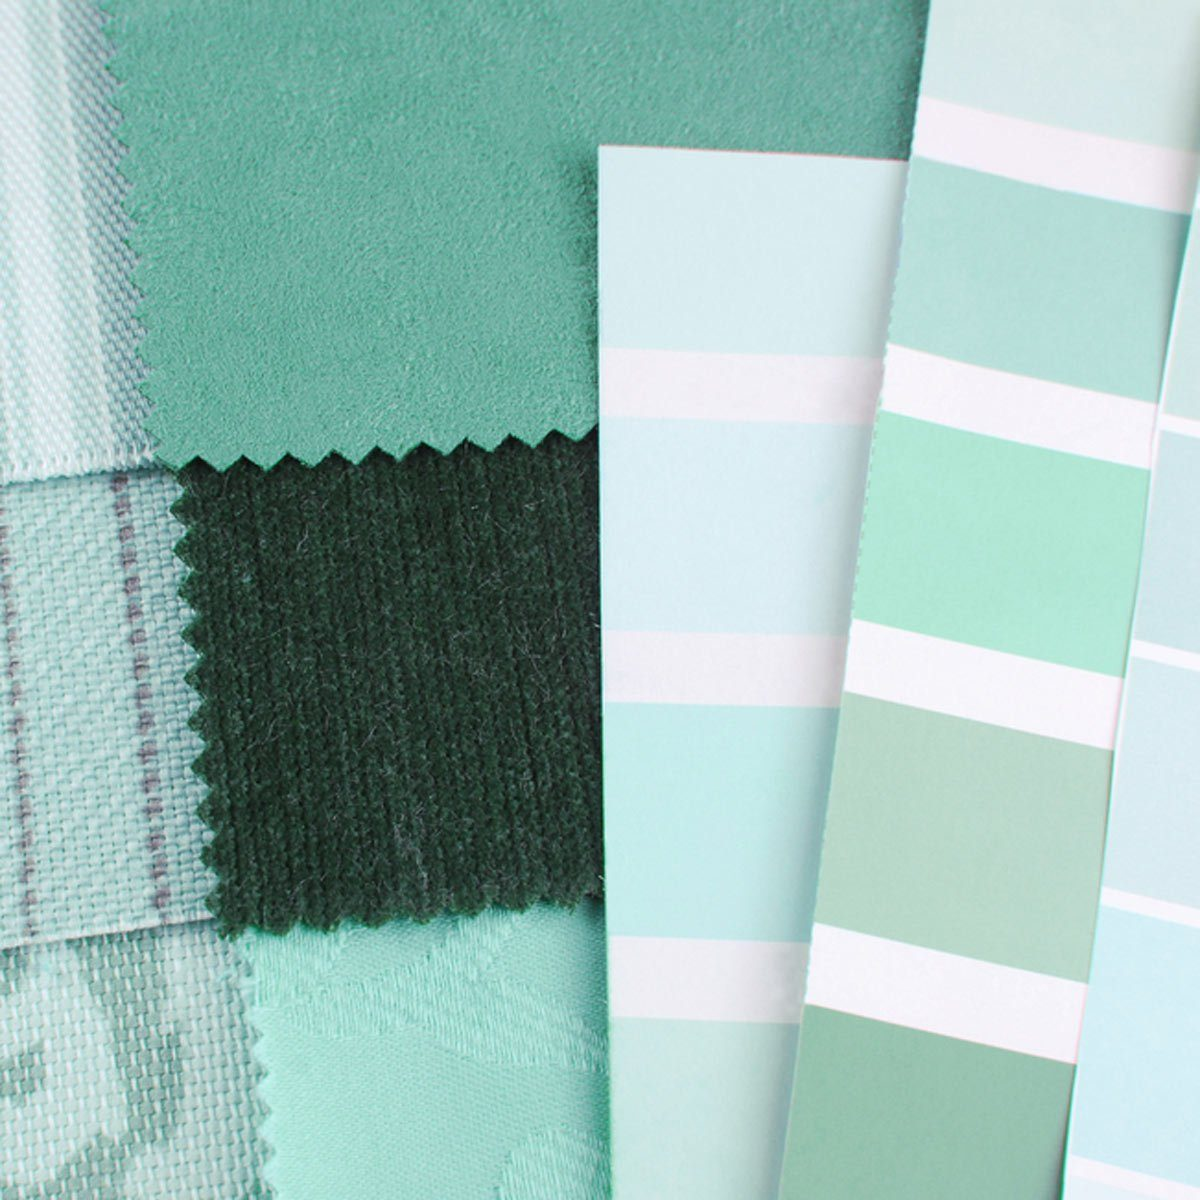 Interior Design Tips: Use Furnishings as a Paint Color Guide